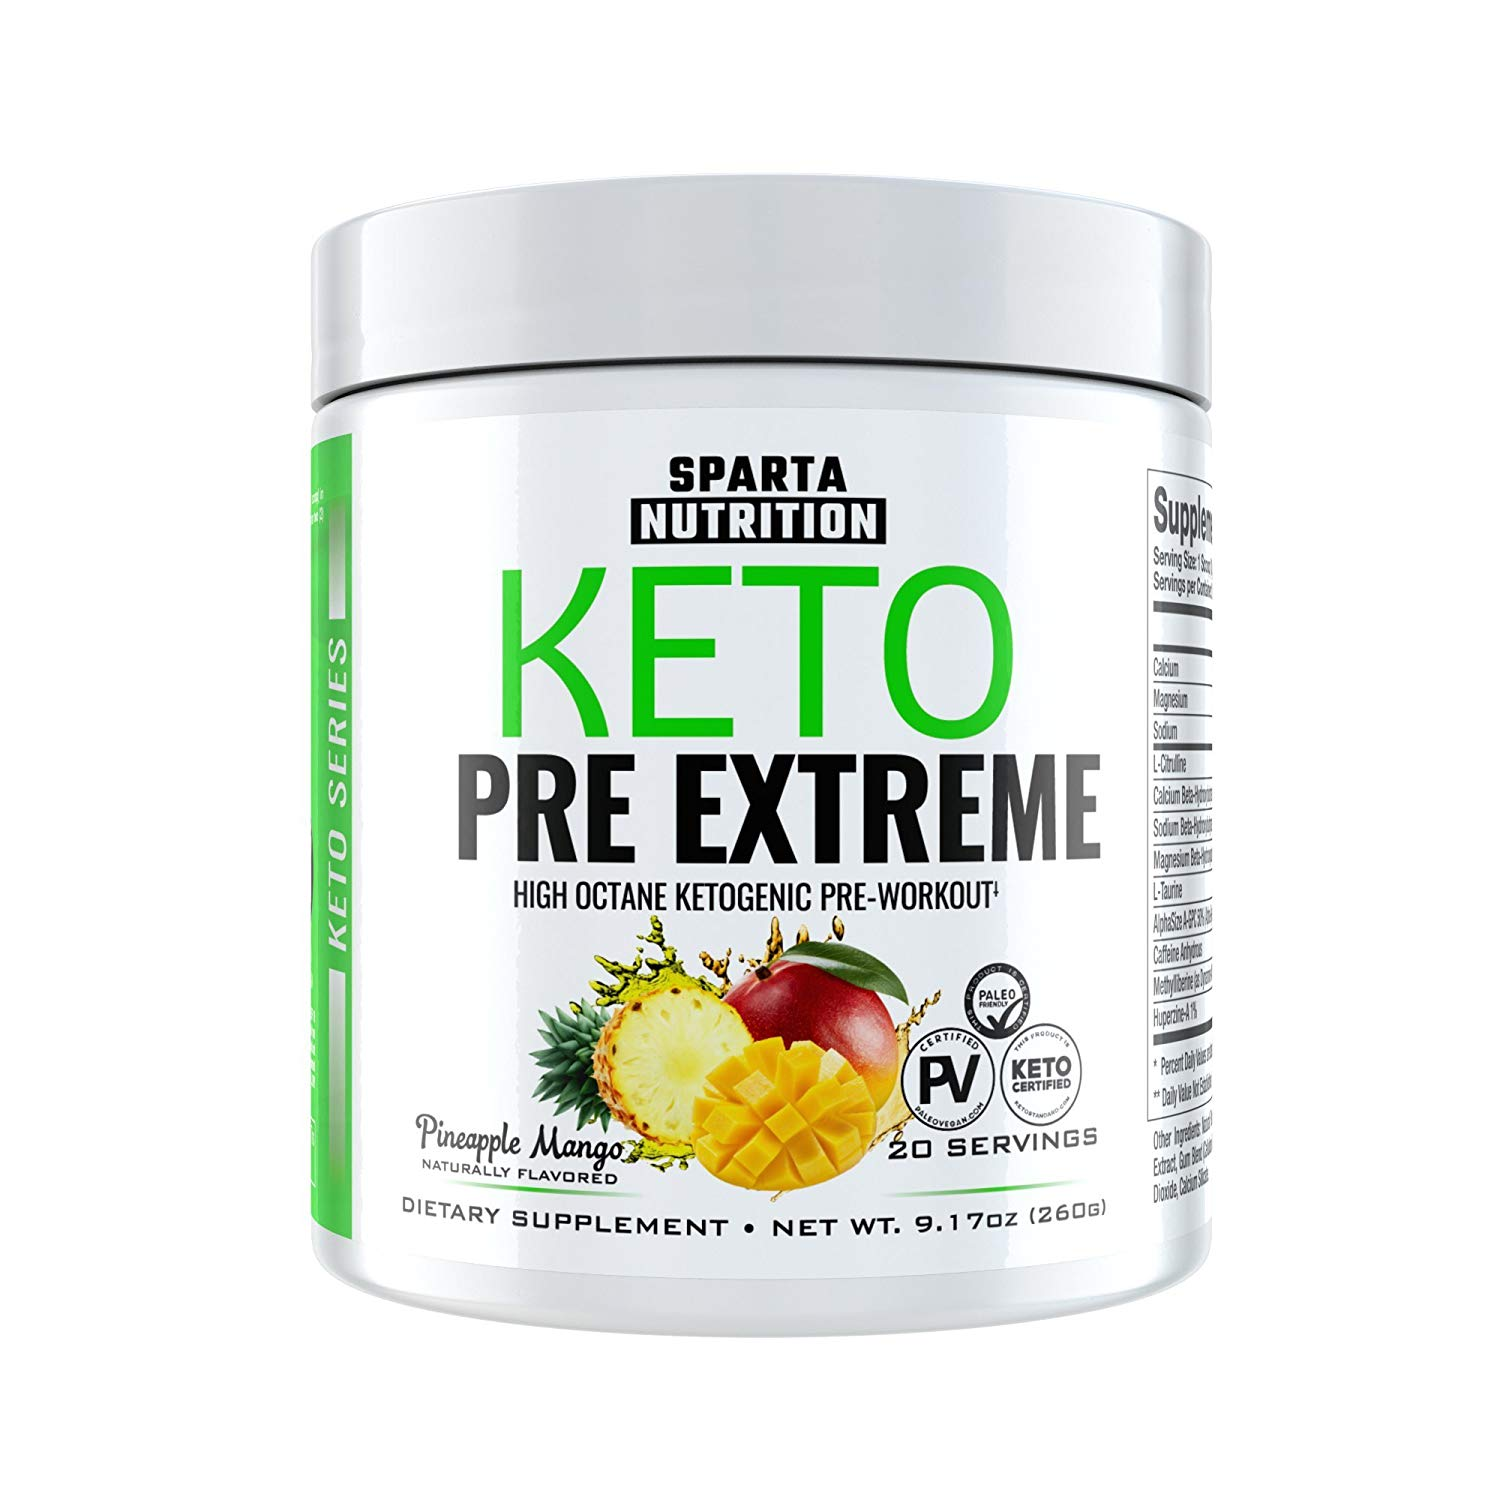 Sparta nutrition Keto Pre Extreme 20 Serving